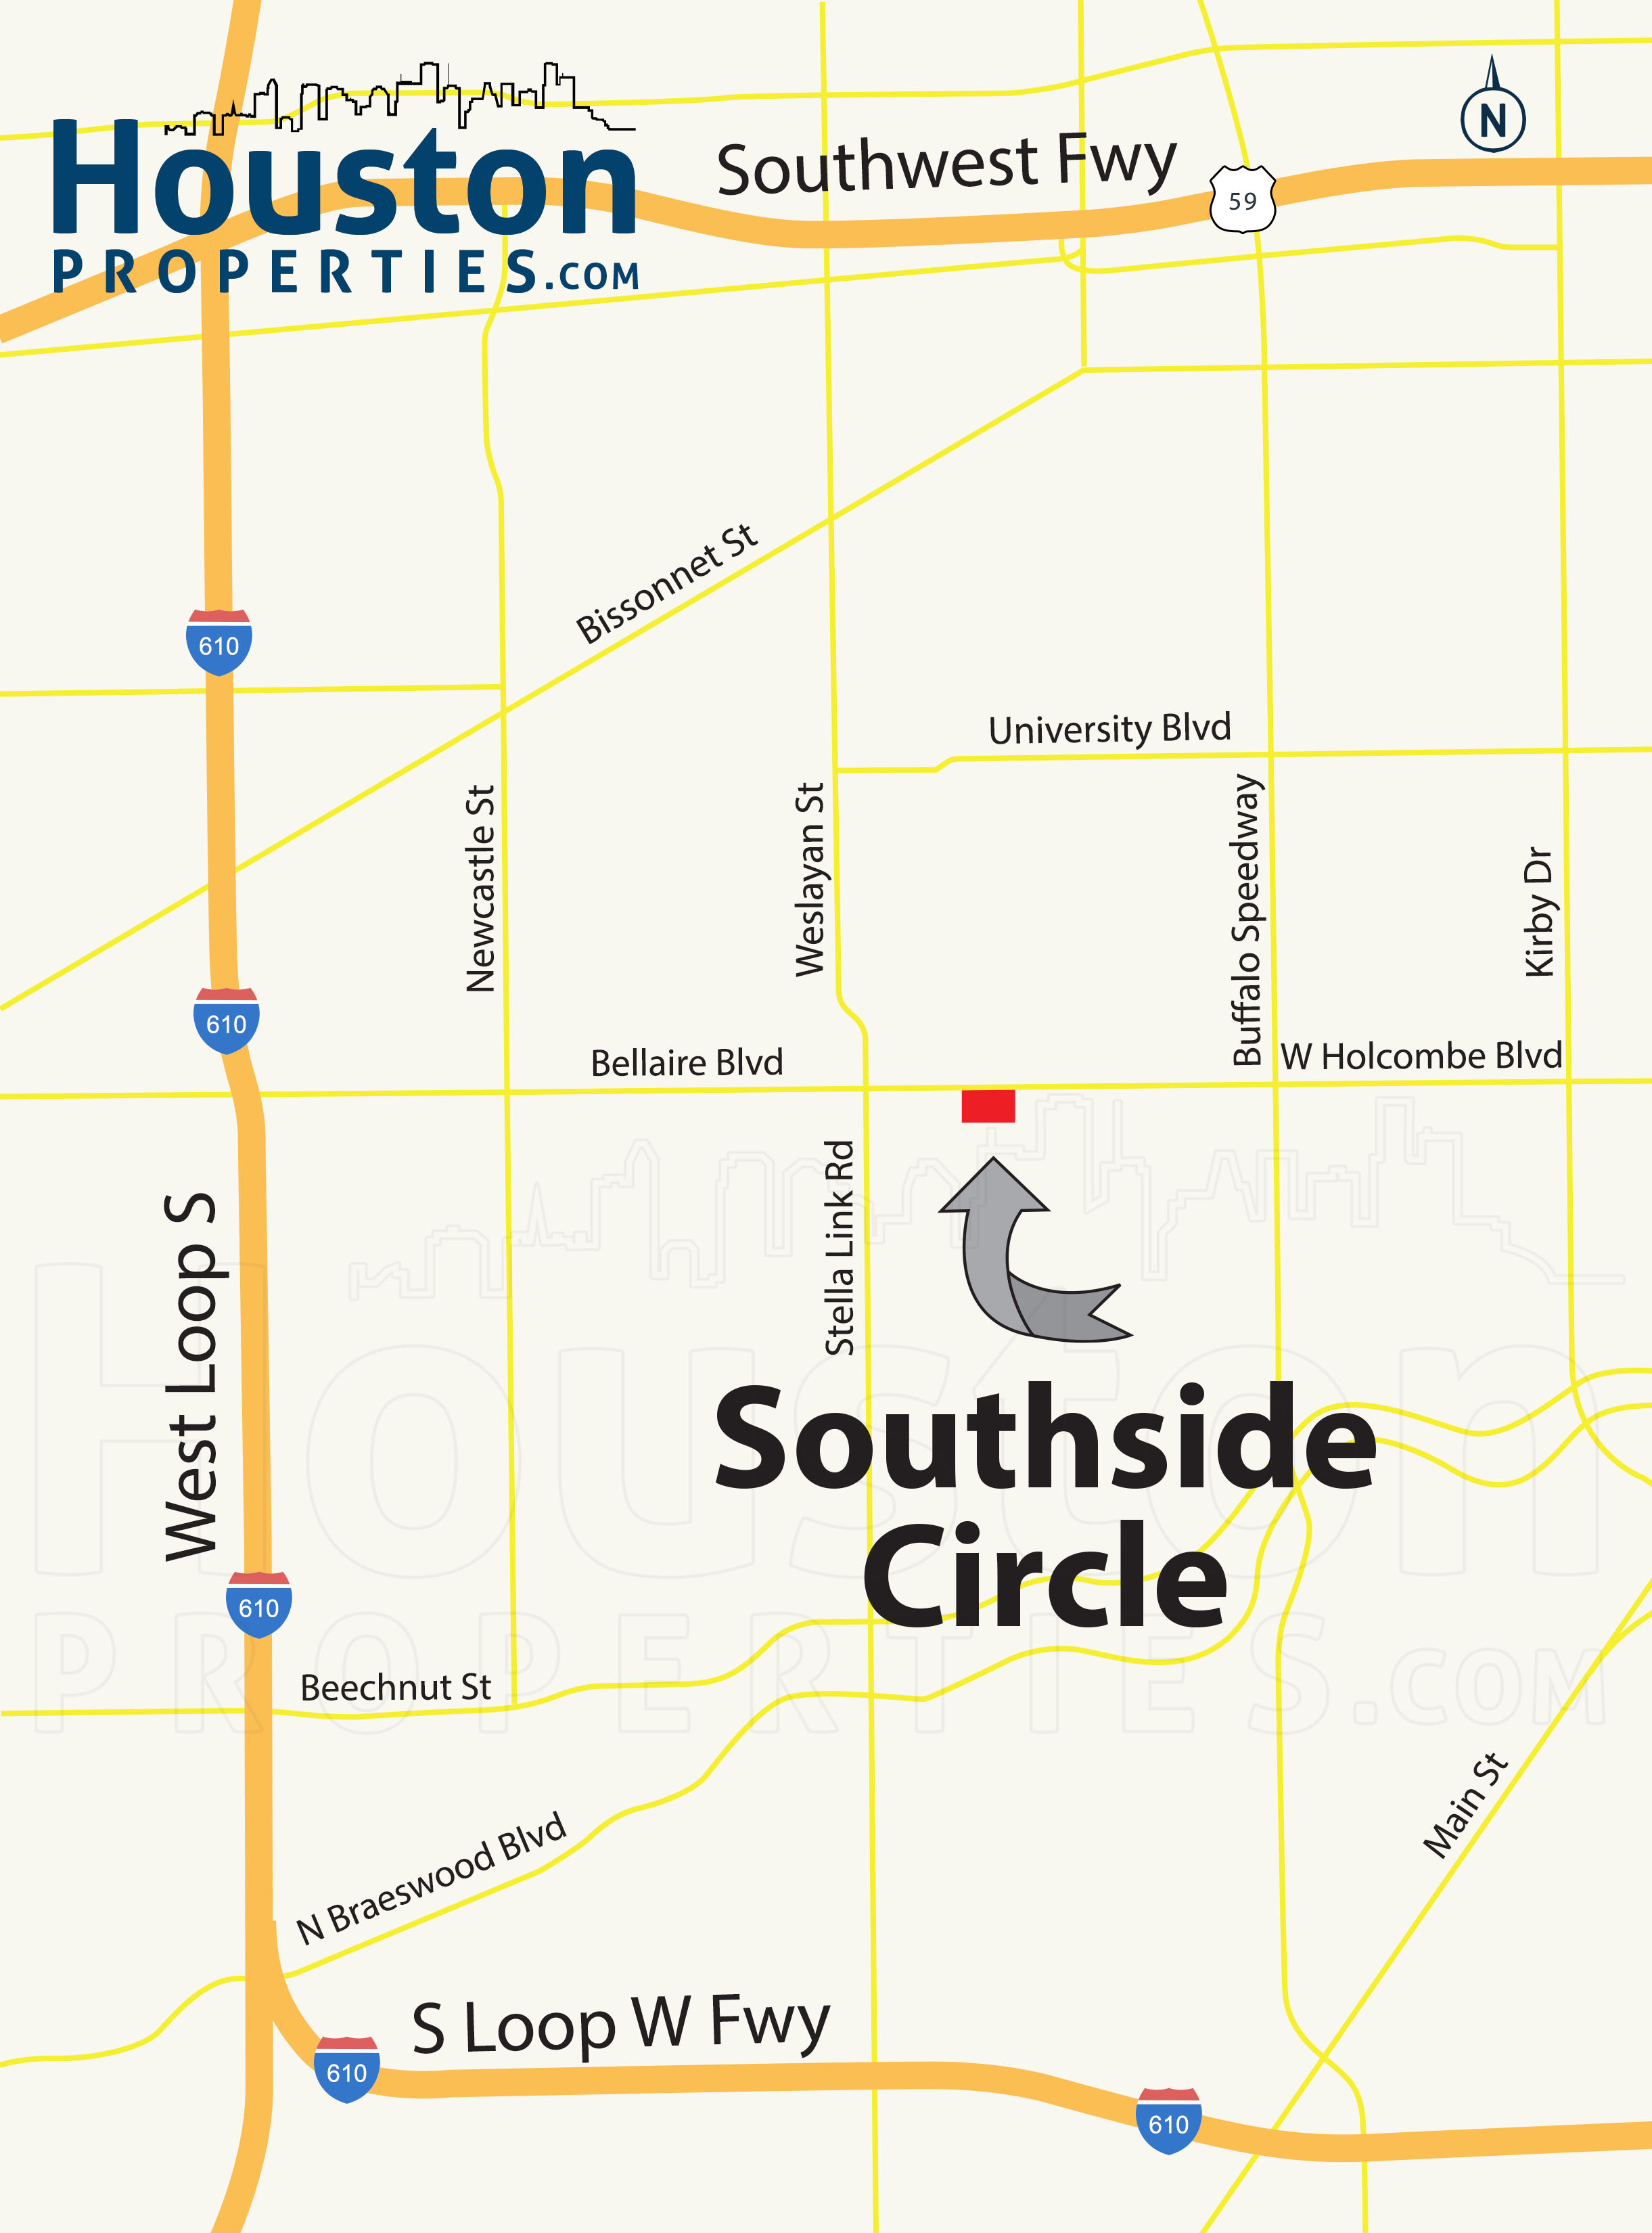 Southside Circle Location